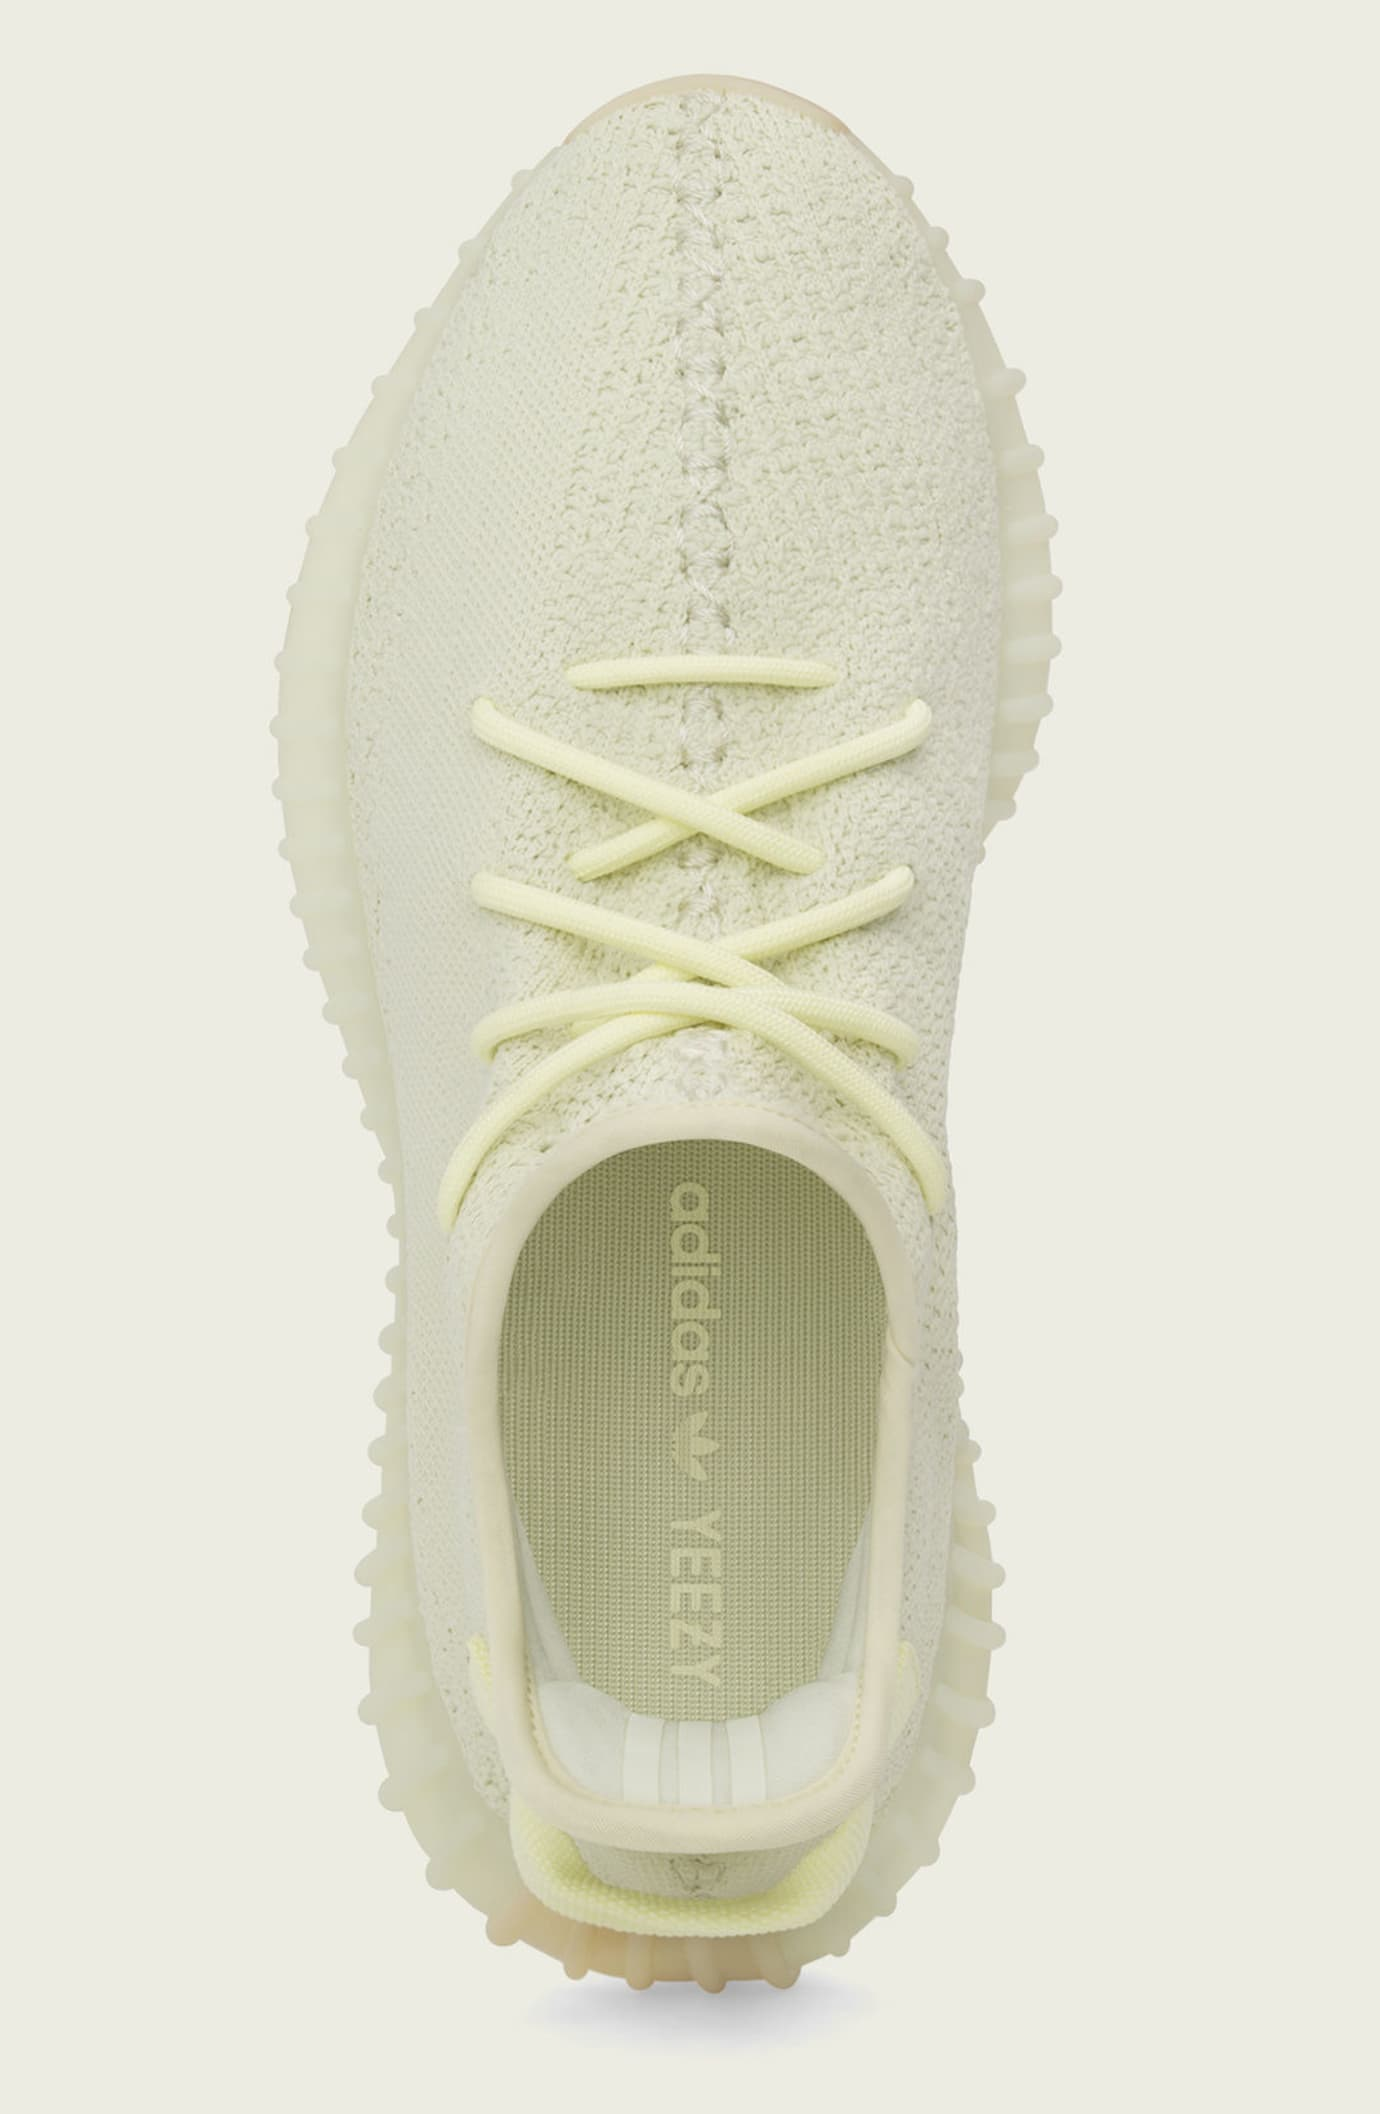 new style 4c314 27cbb Adidas Yeezy Boost 350 V2 'Butter' F36980 January 2018 ...